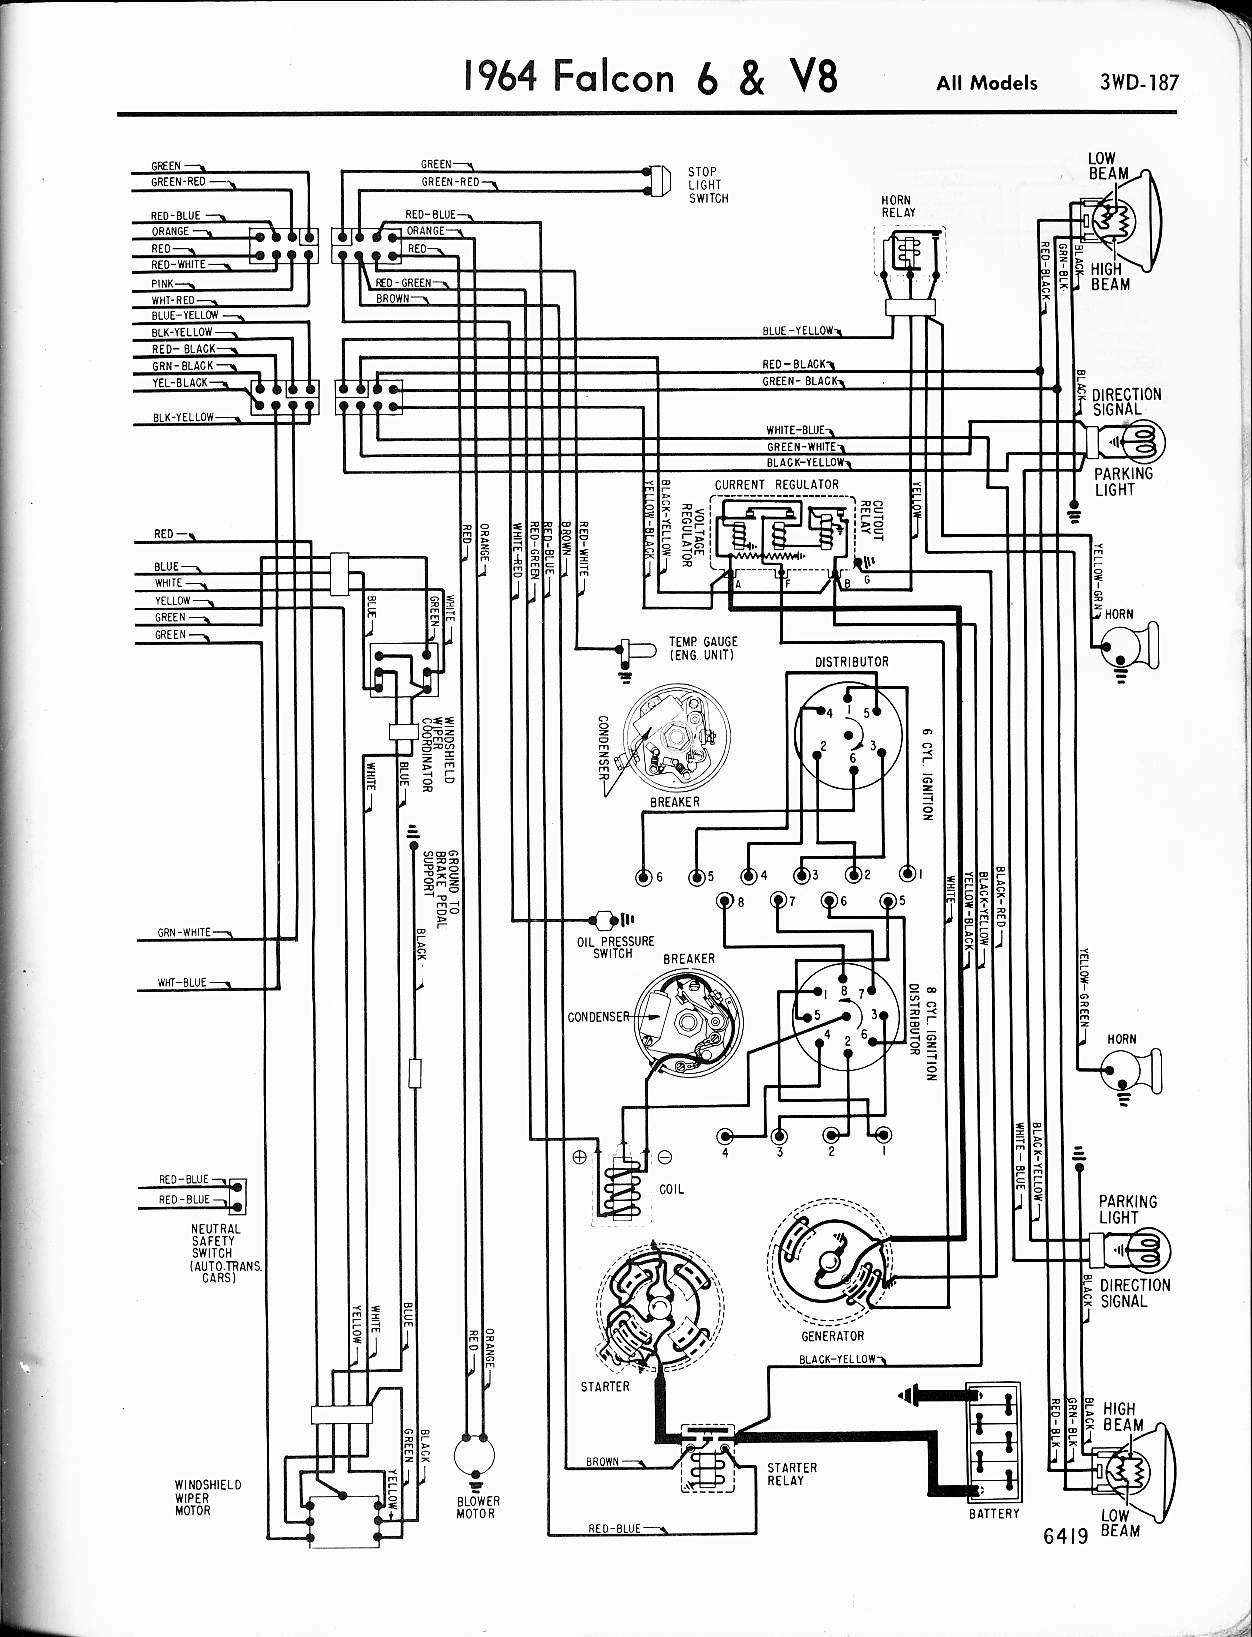 1964 ford falcon ignition wiring diagram aprBtki 1964 ford falcon ignition wiring diagram image details ba falcon engine wiring diagram at creativeand.co